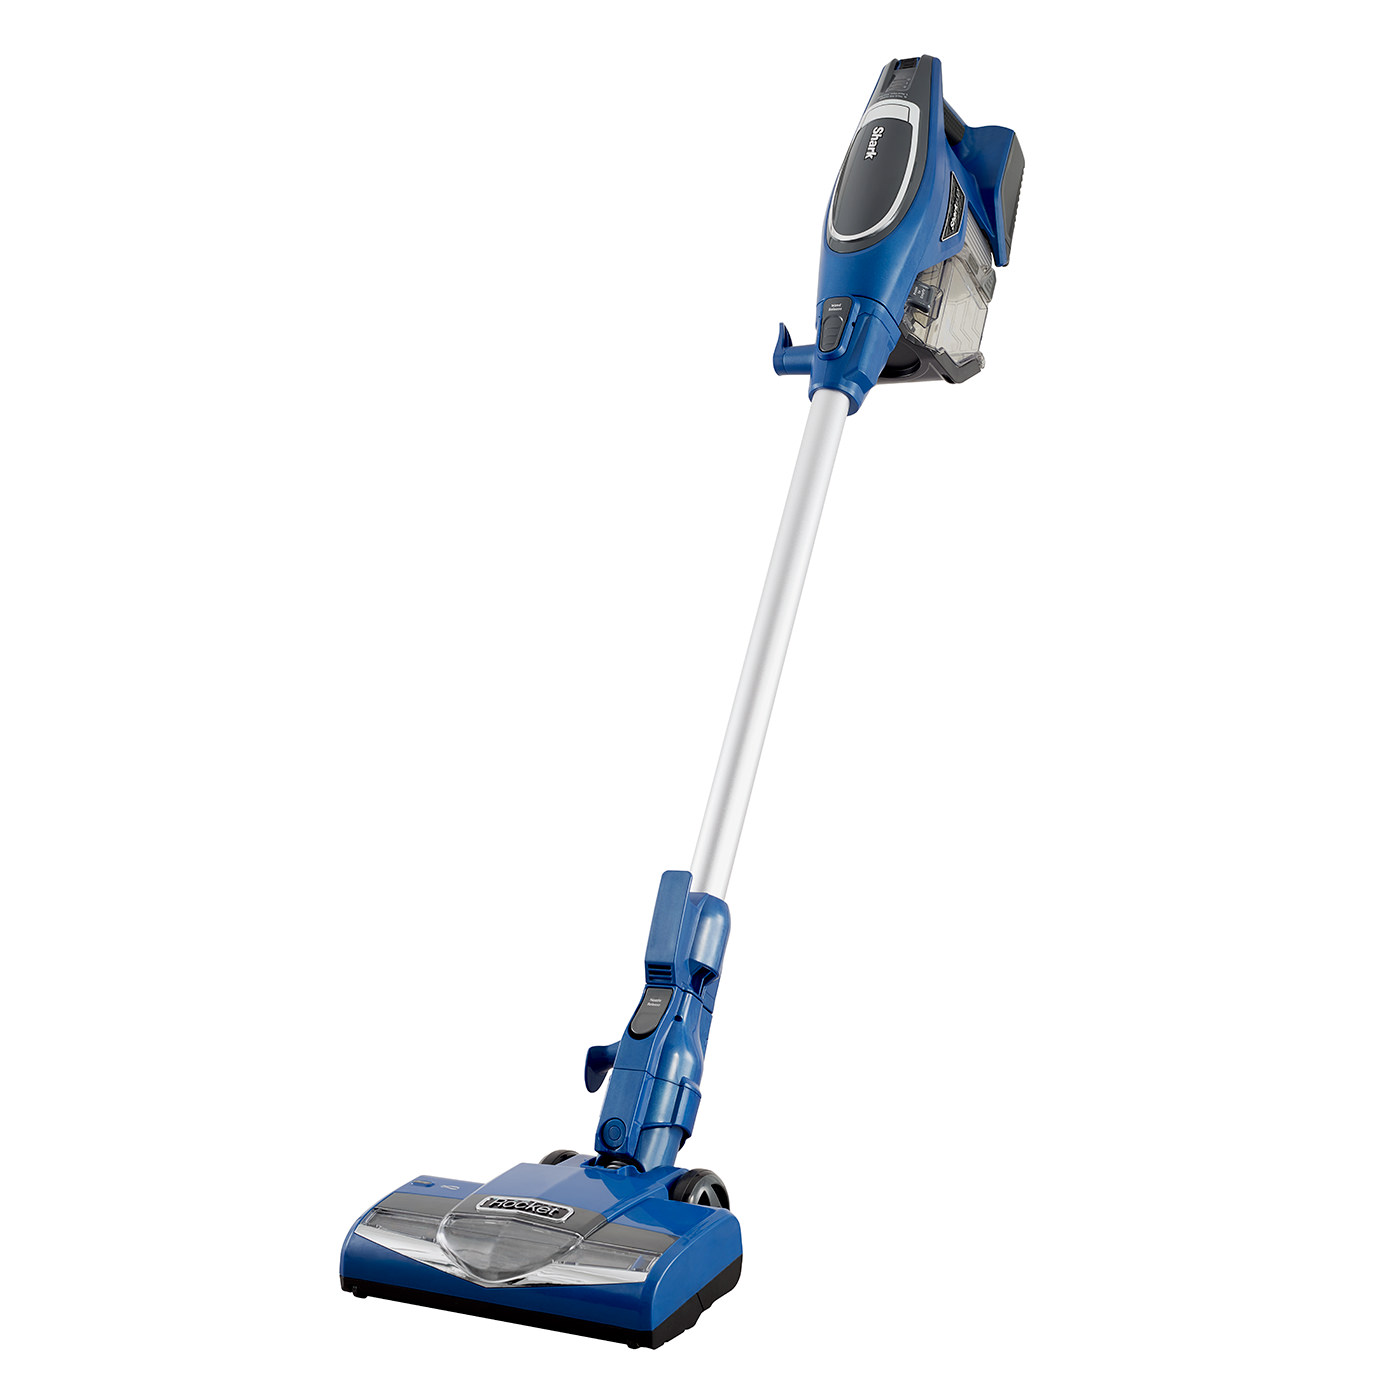 Shark Corded Stick Vacuum Cleaner Hv330uk Shark